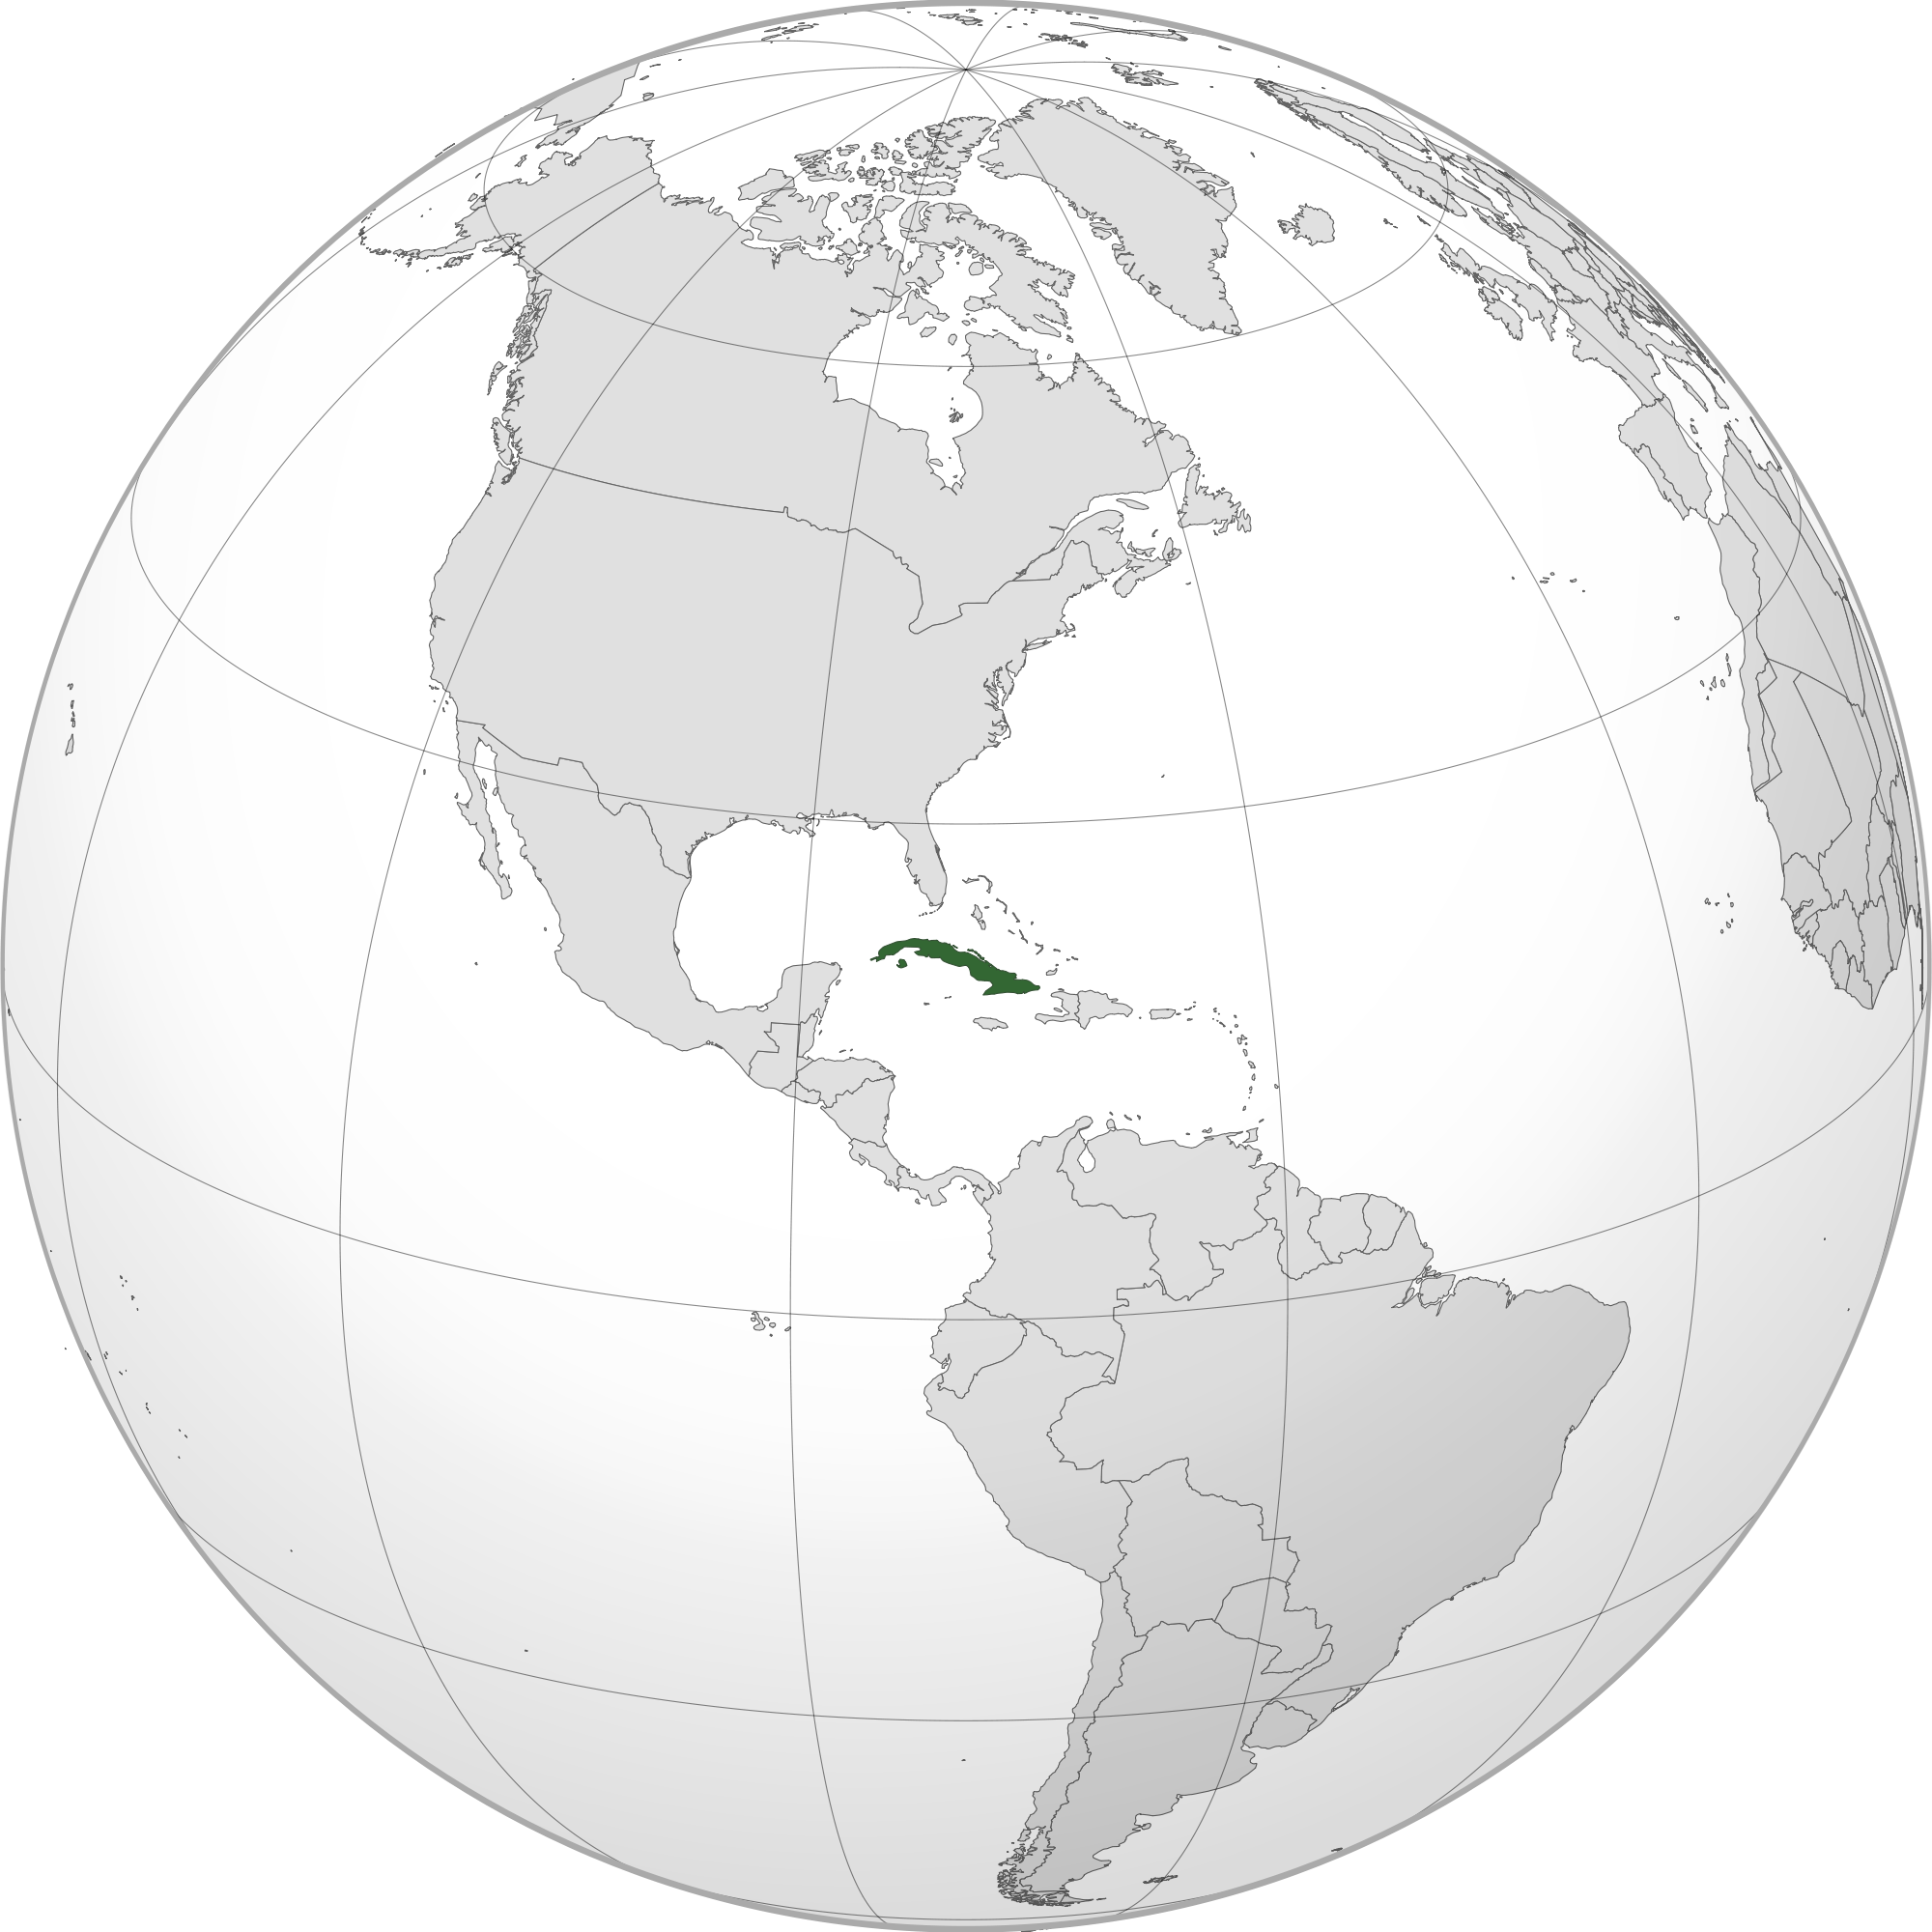 Location of the cuba in the World Map